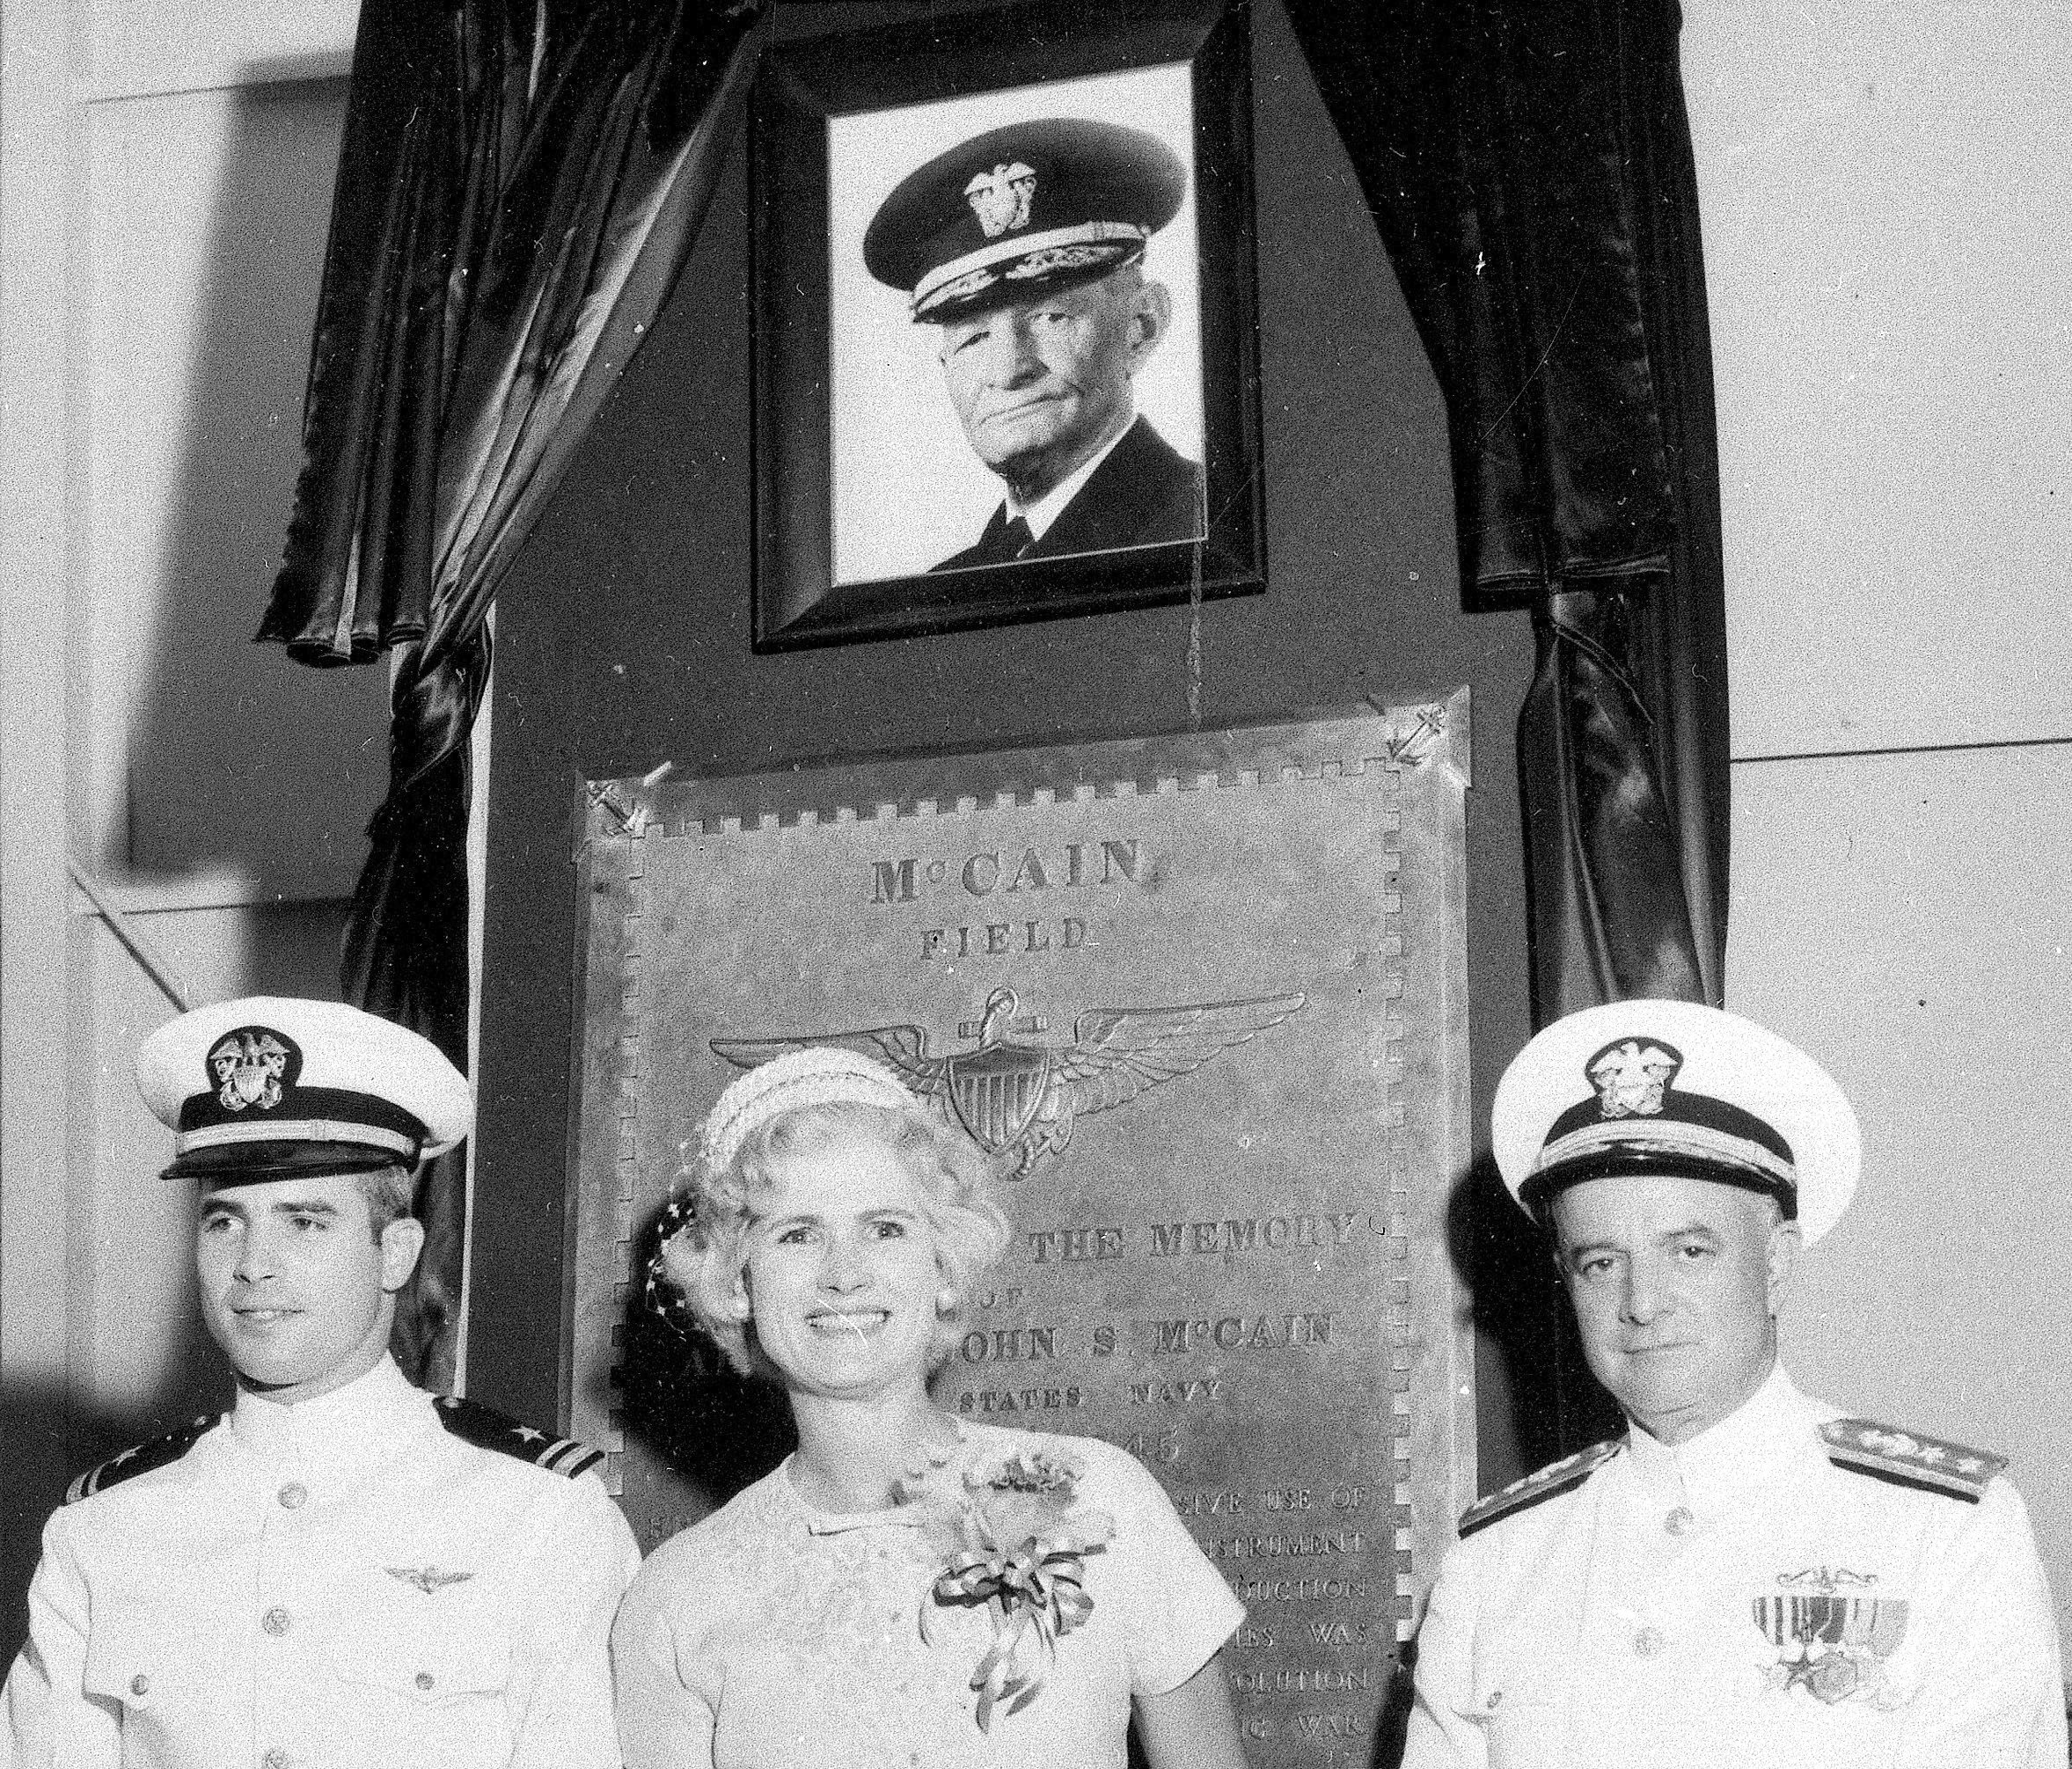 Singapore US Navy Ship Collision-8 FILE - In this July 14, 1961, file photo, then Lt. John S. McCain III, left, and his parents, Rear Adm. John S. McCain Jr. and Roberta Wright McCain take part in the ceremony to commission McCain Field, the U.S. Navy training base in Meridian, Miss., named in honor of Adm. John S. McCain, in photo at top, respectively grandfather and father to the two McCains. Ten U.S. sailors are missing after a collision between the USS John S. McCain and a tanker early Monday, Aug. 21, 2017, east of Singapore, the second accident involving a ship from the Navy's 7th Fleet in the Pacific in two months. The 154-meter (505-foot) McCain is named after U.S. Sen. John McCain's father and grandfather, who were both U.S. admirals. (AP Photo/File)